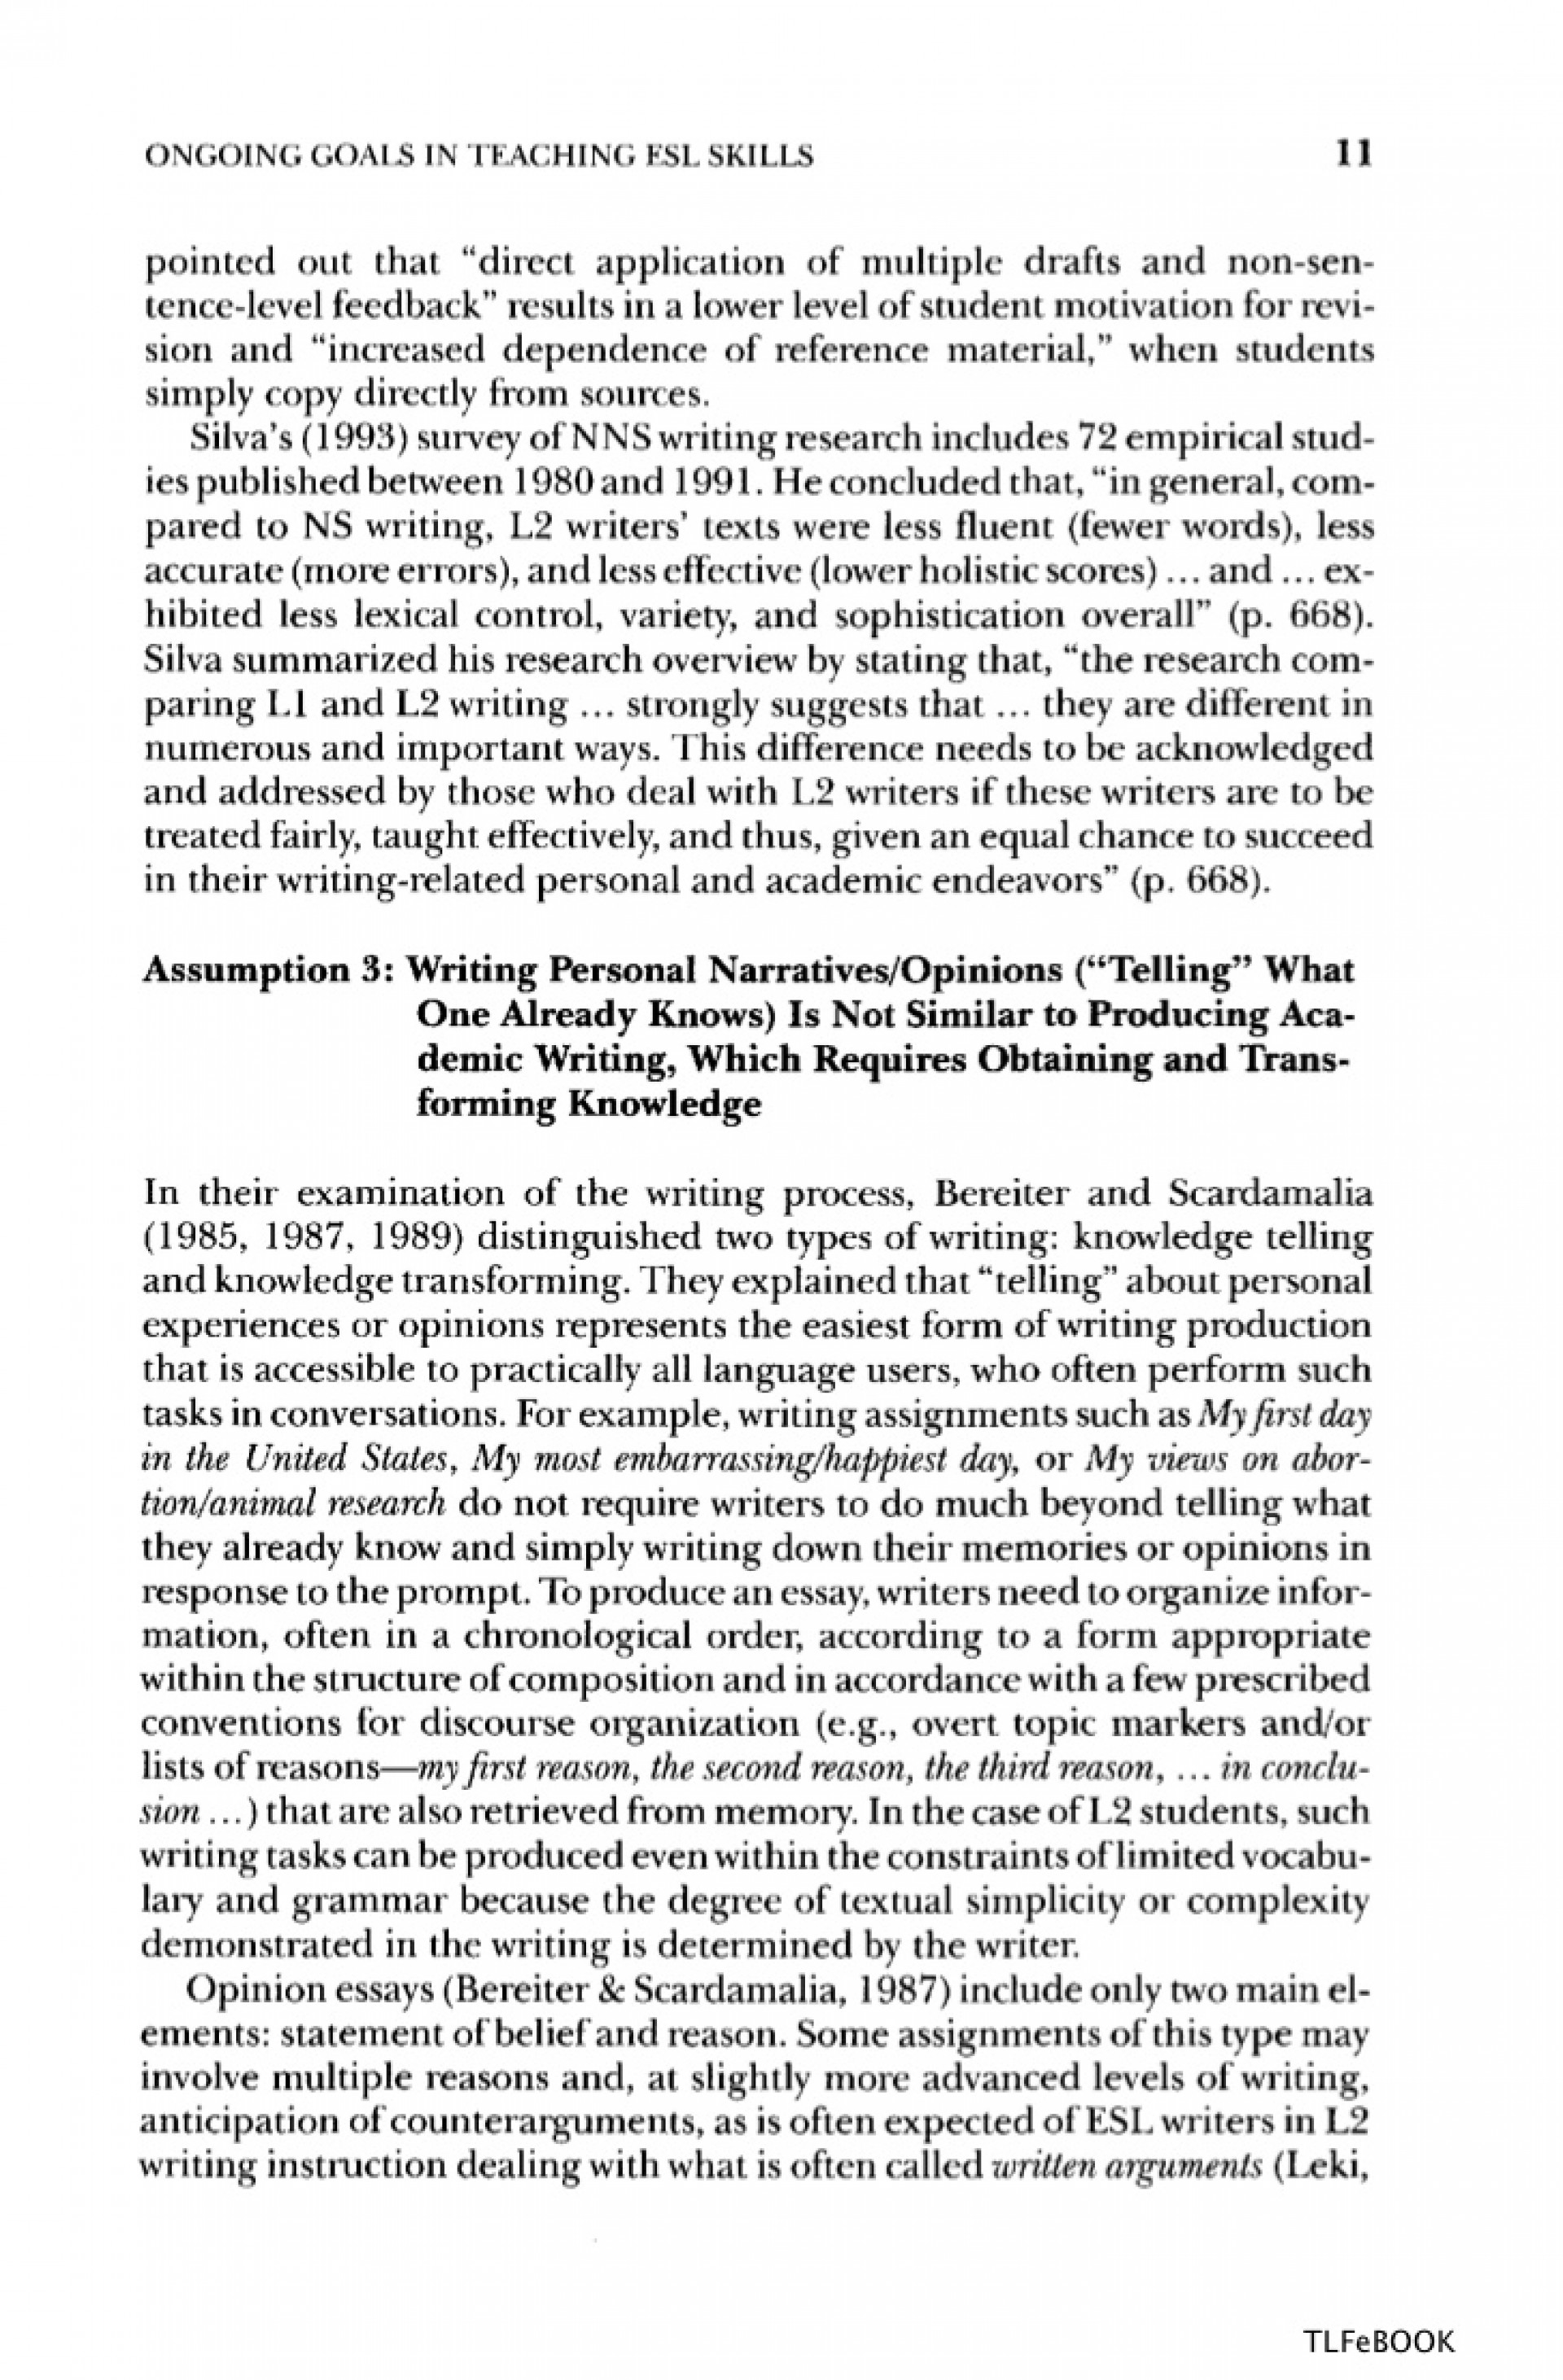 012 Essay About Family English Teaching Academic Esl Writing Practical Techniques In Vocabulary And Grammar Shocking History Influence On Values First Foremost 1920